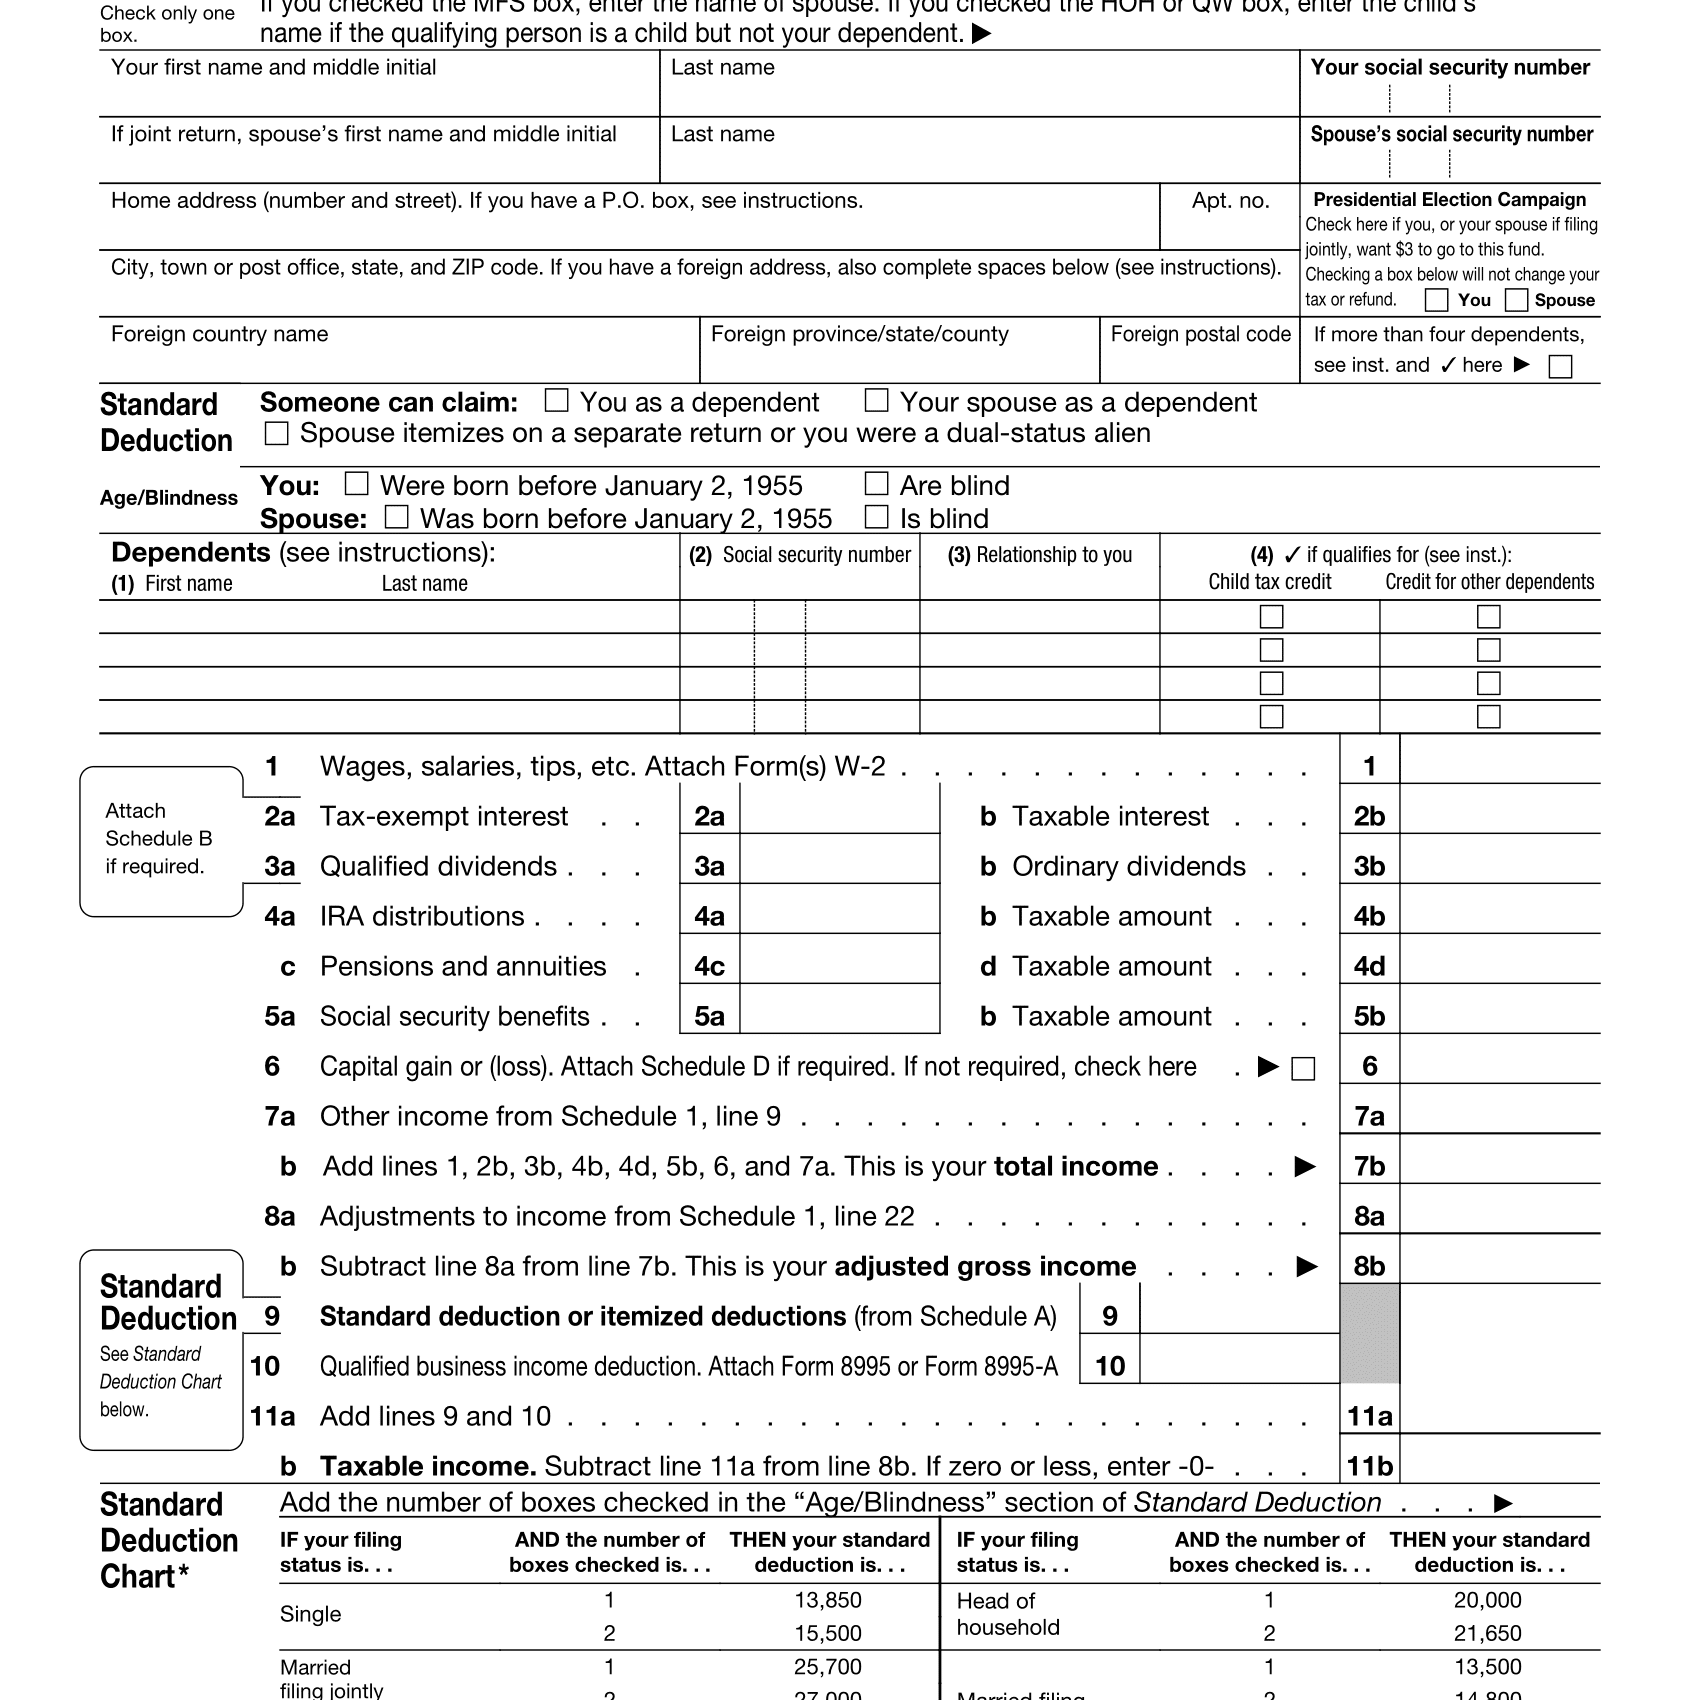 Standard Deduction For Over 65